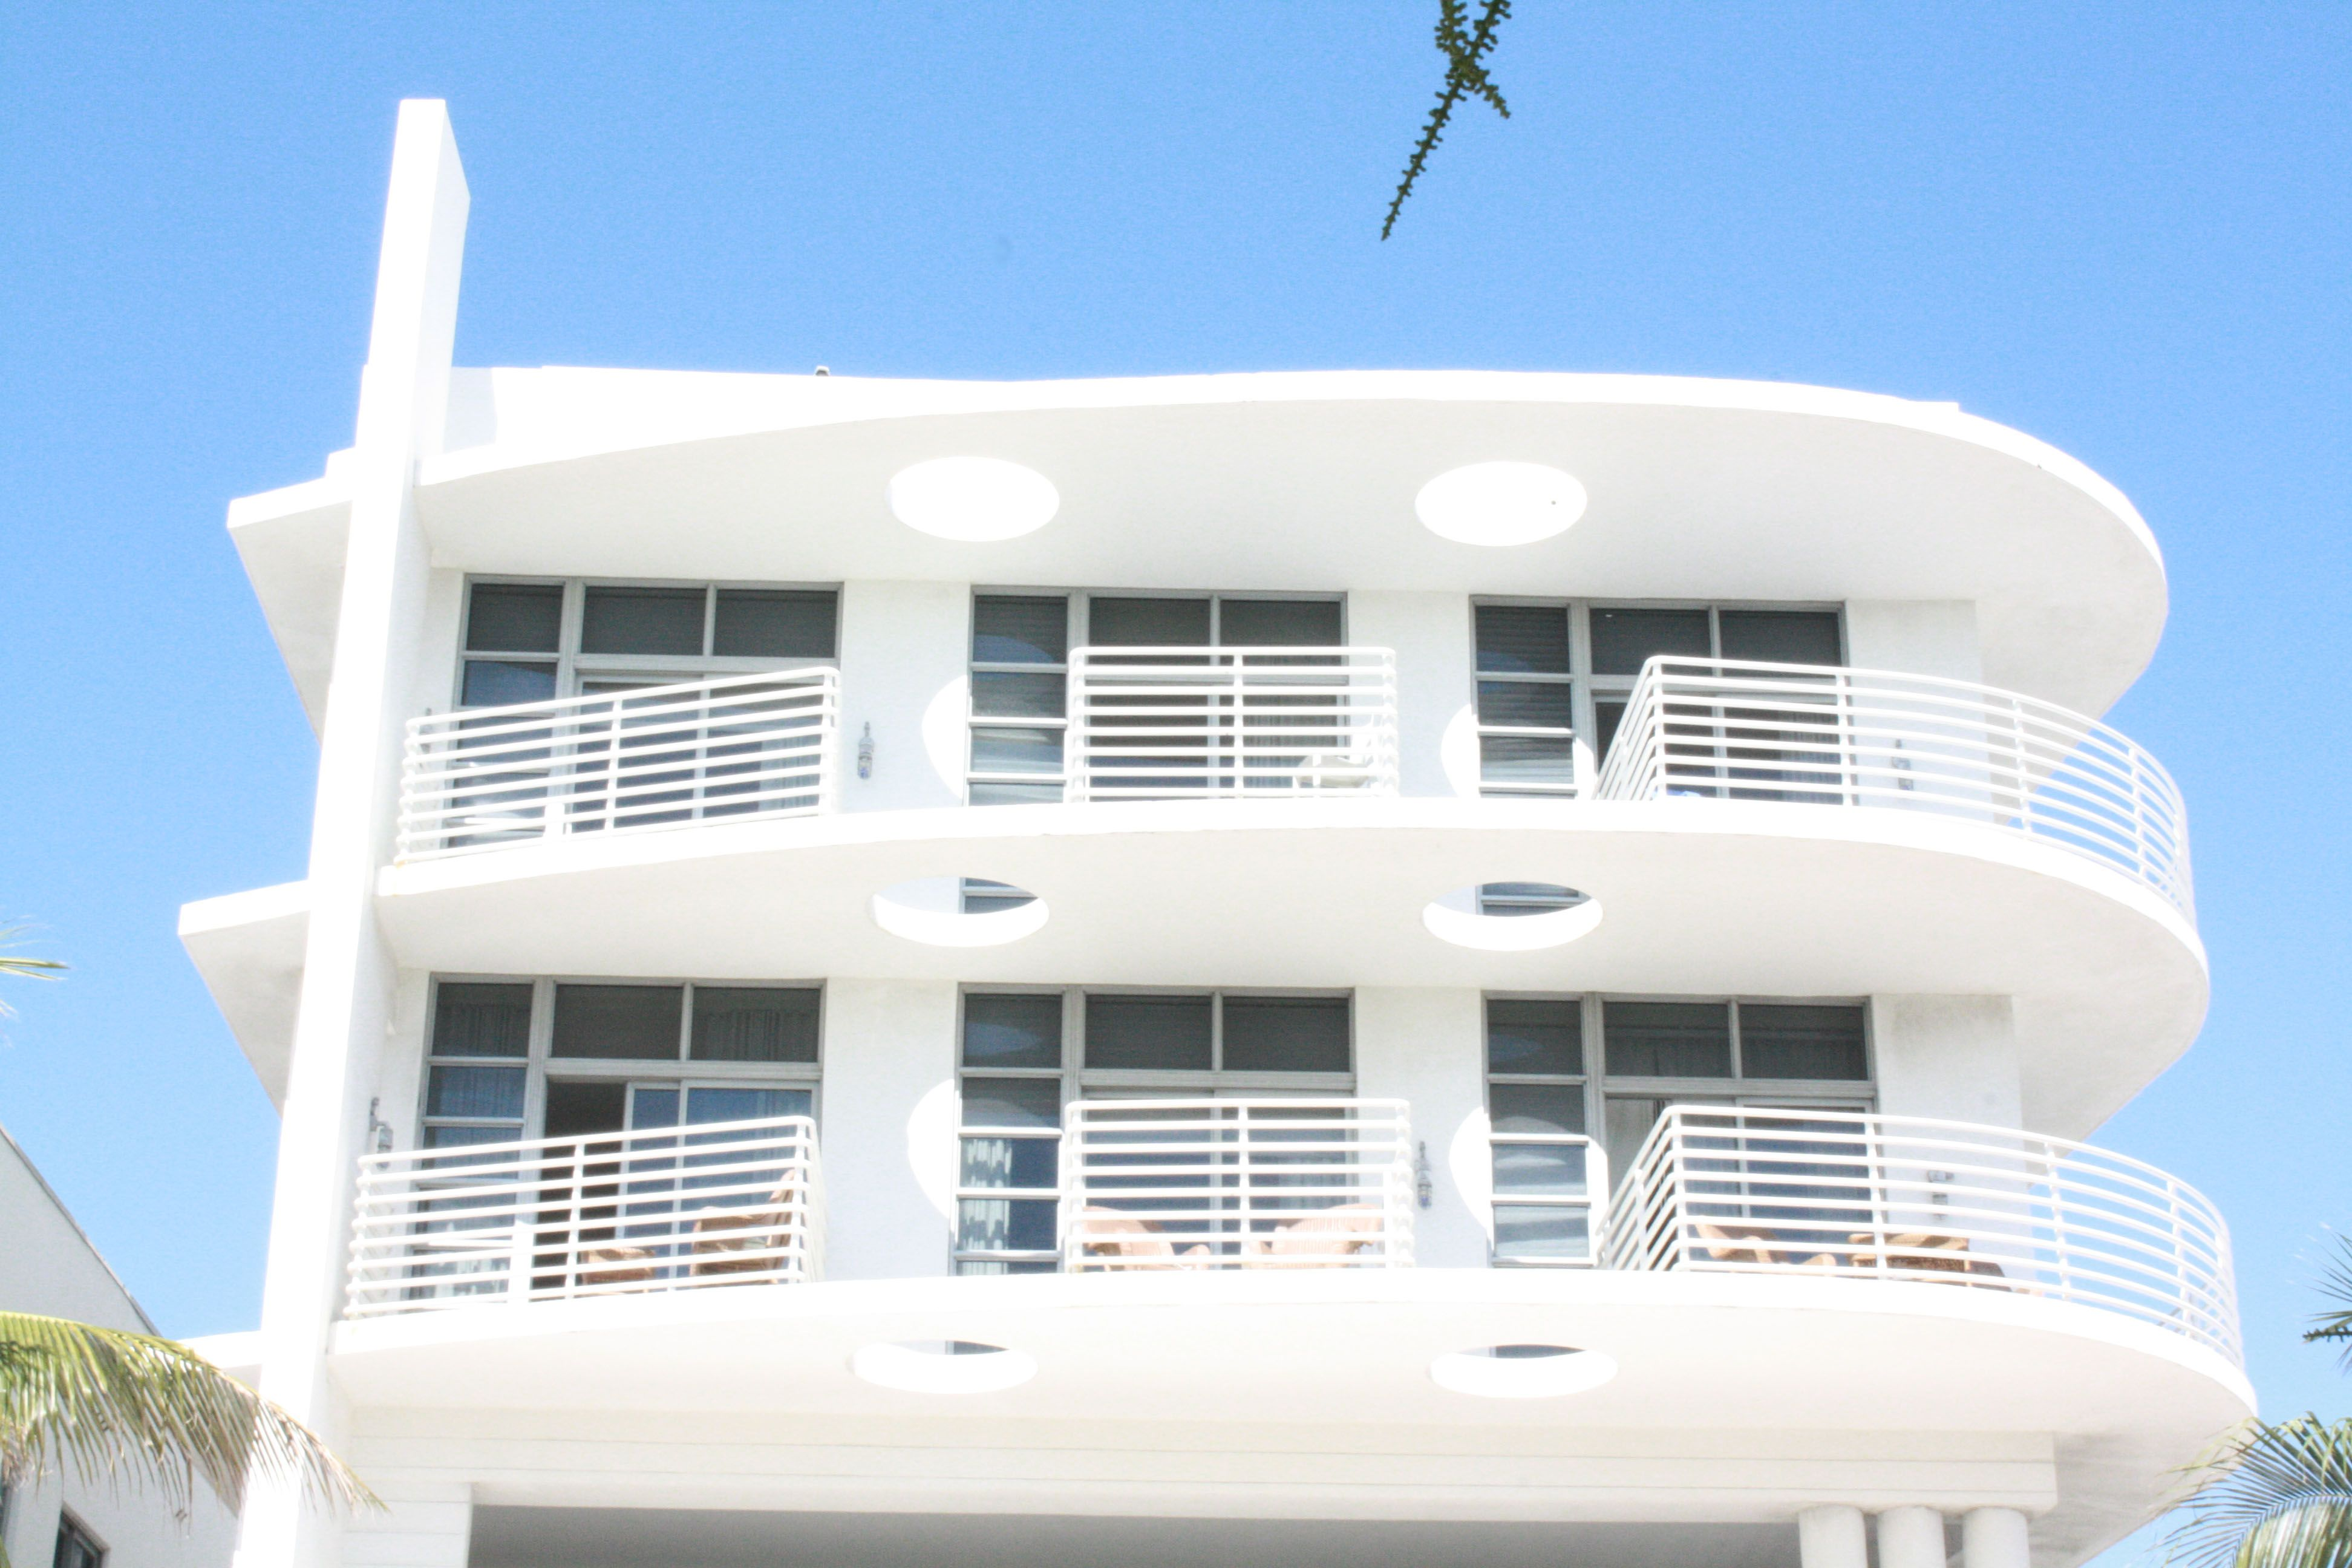 MiMo, which is short for Miami Modern is a style of architecture